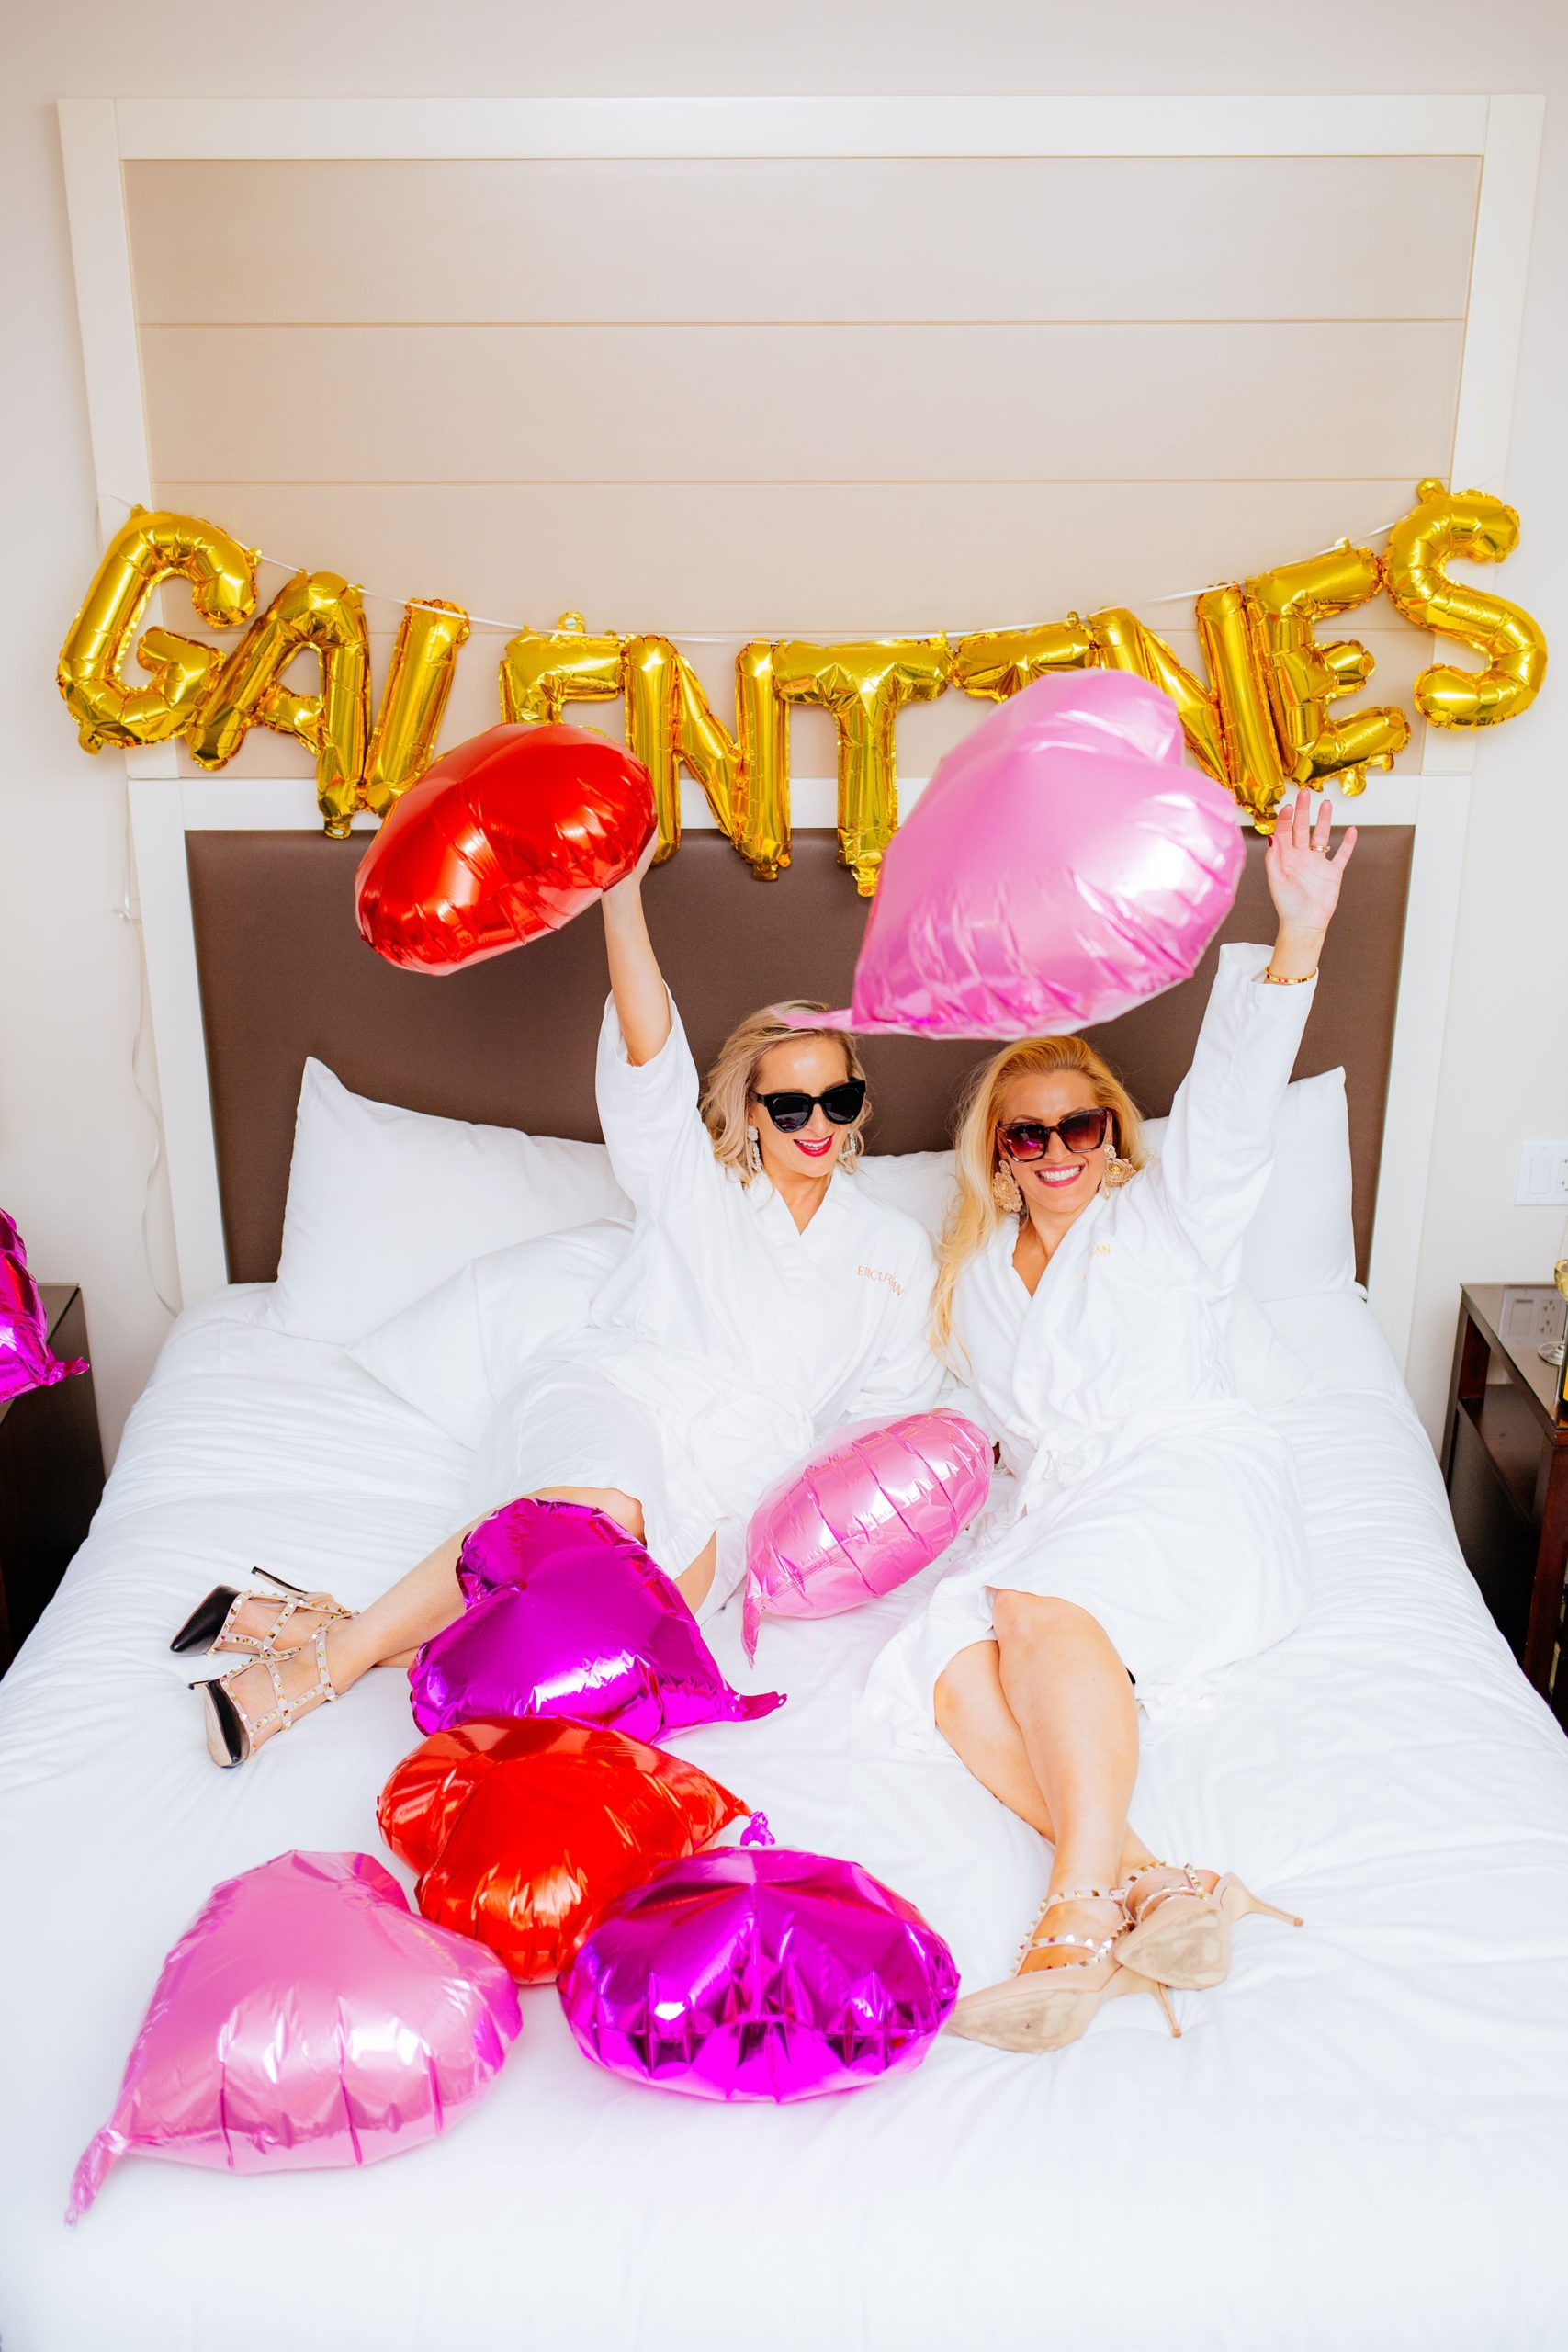 Tampa Fashion Bloggers Jenn Truman @jtstjtst11 and Jill DiGioia @thelovelyflamingo at the Epicurean Hotel, Autograph Collection in their room in white robes and studded high heels